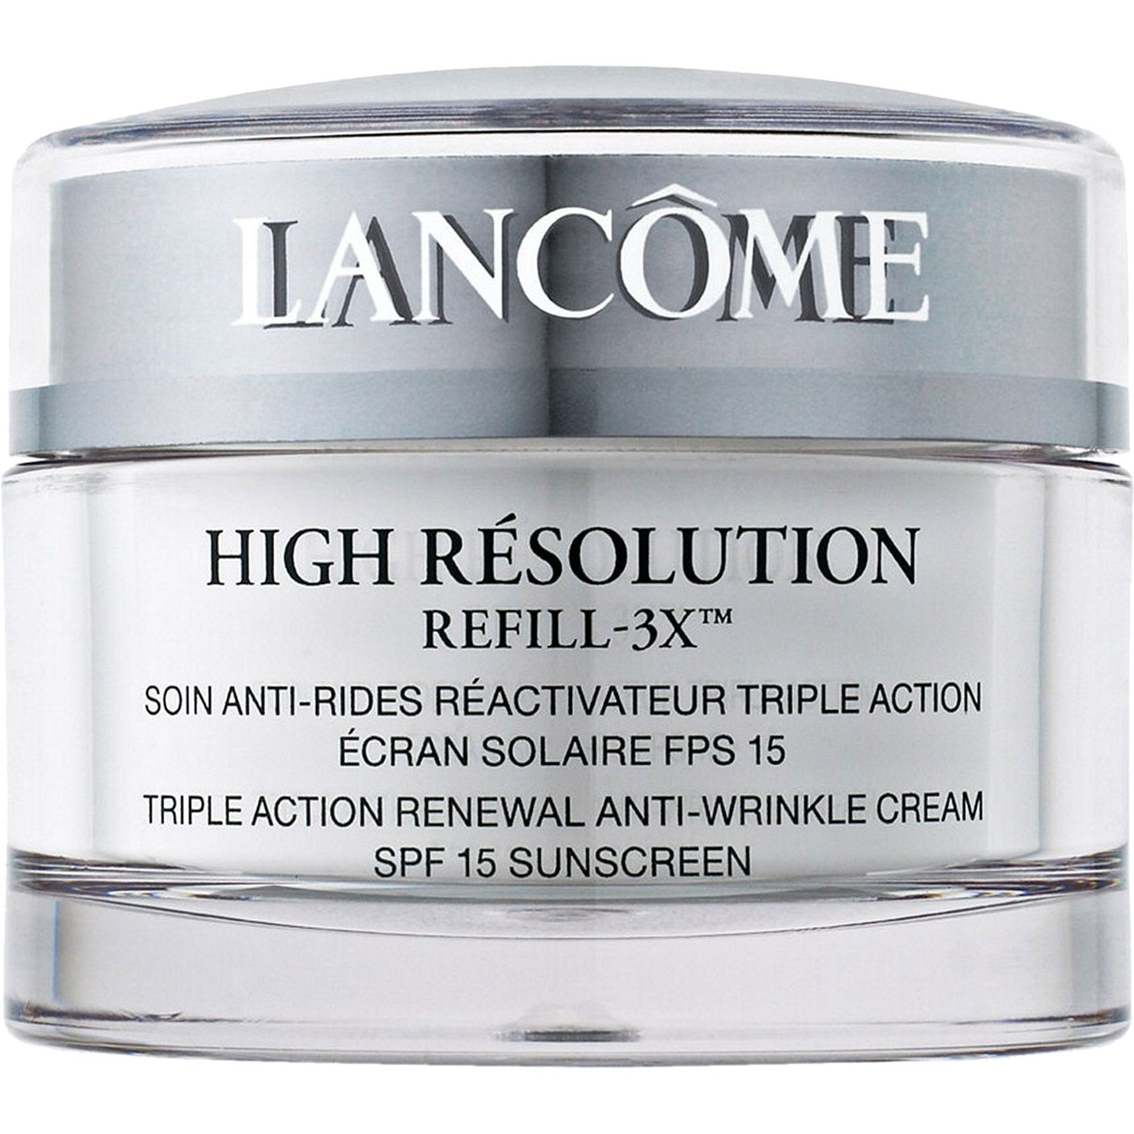 lancome high resolution refill 3x  triple action renewal anti wrinkle face cream